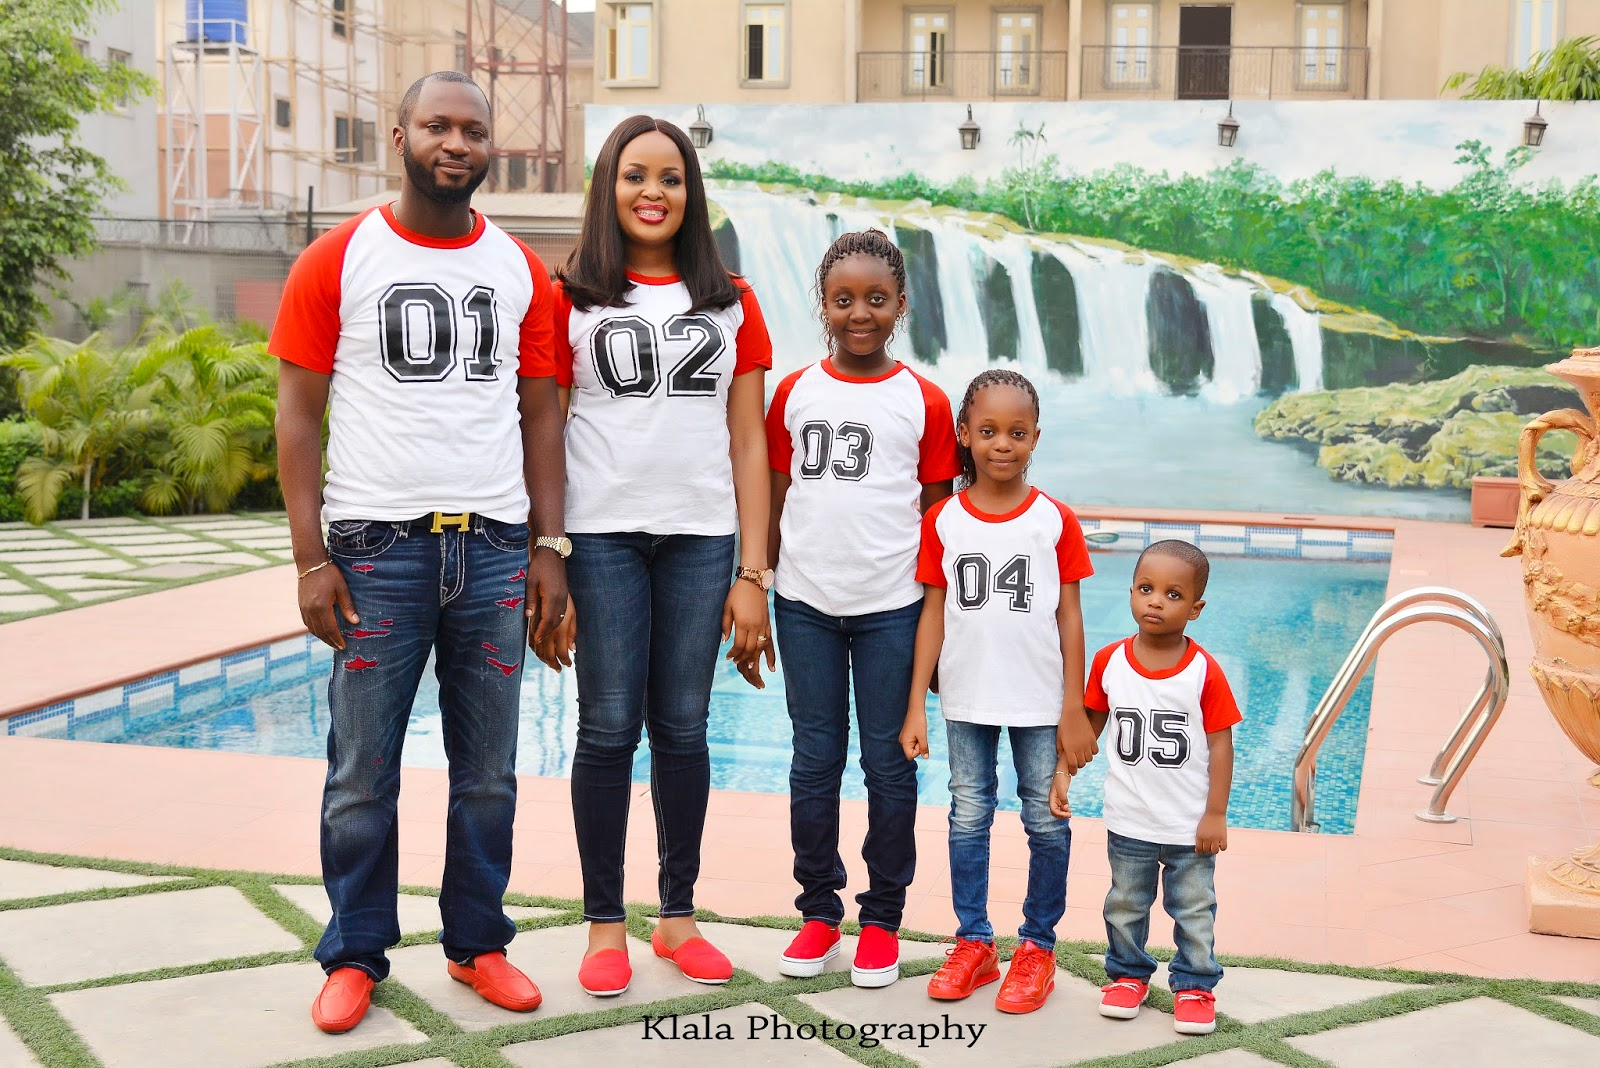 Beautiful Family Mark 10th Year Wedding Anniversary With